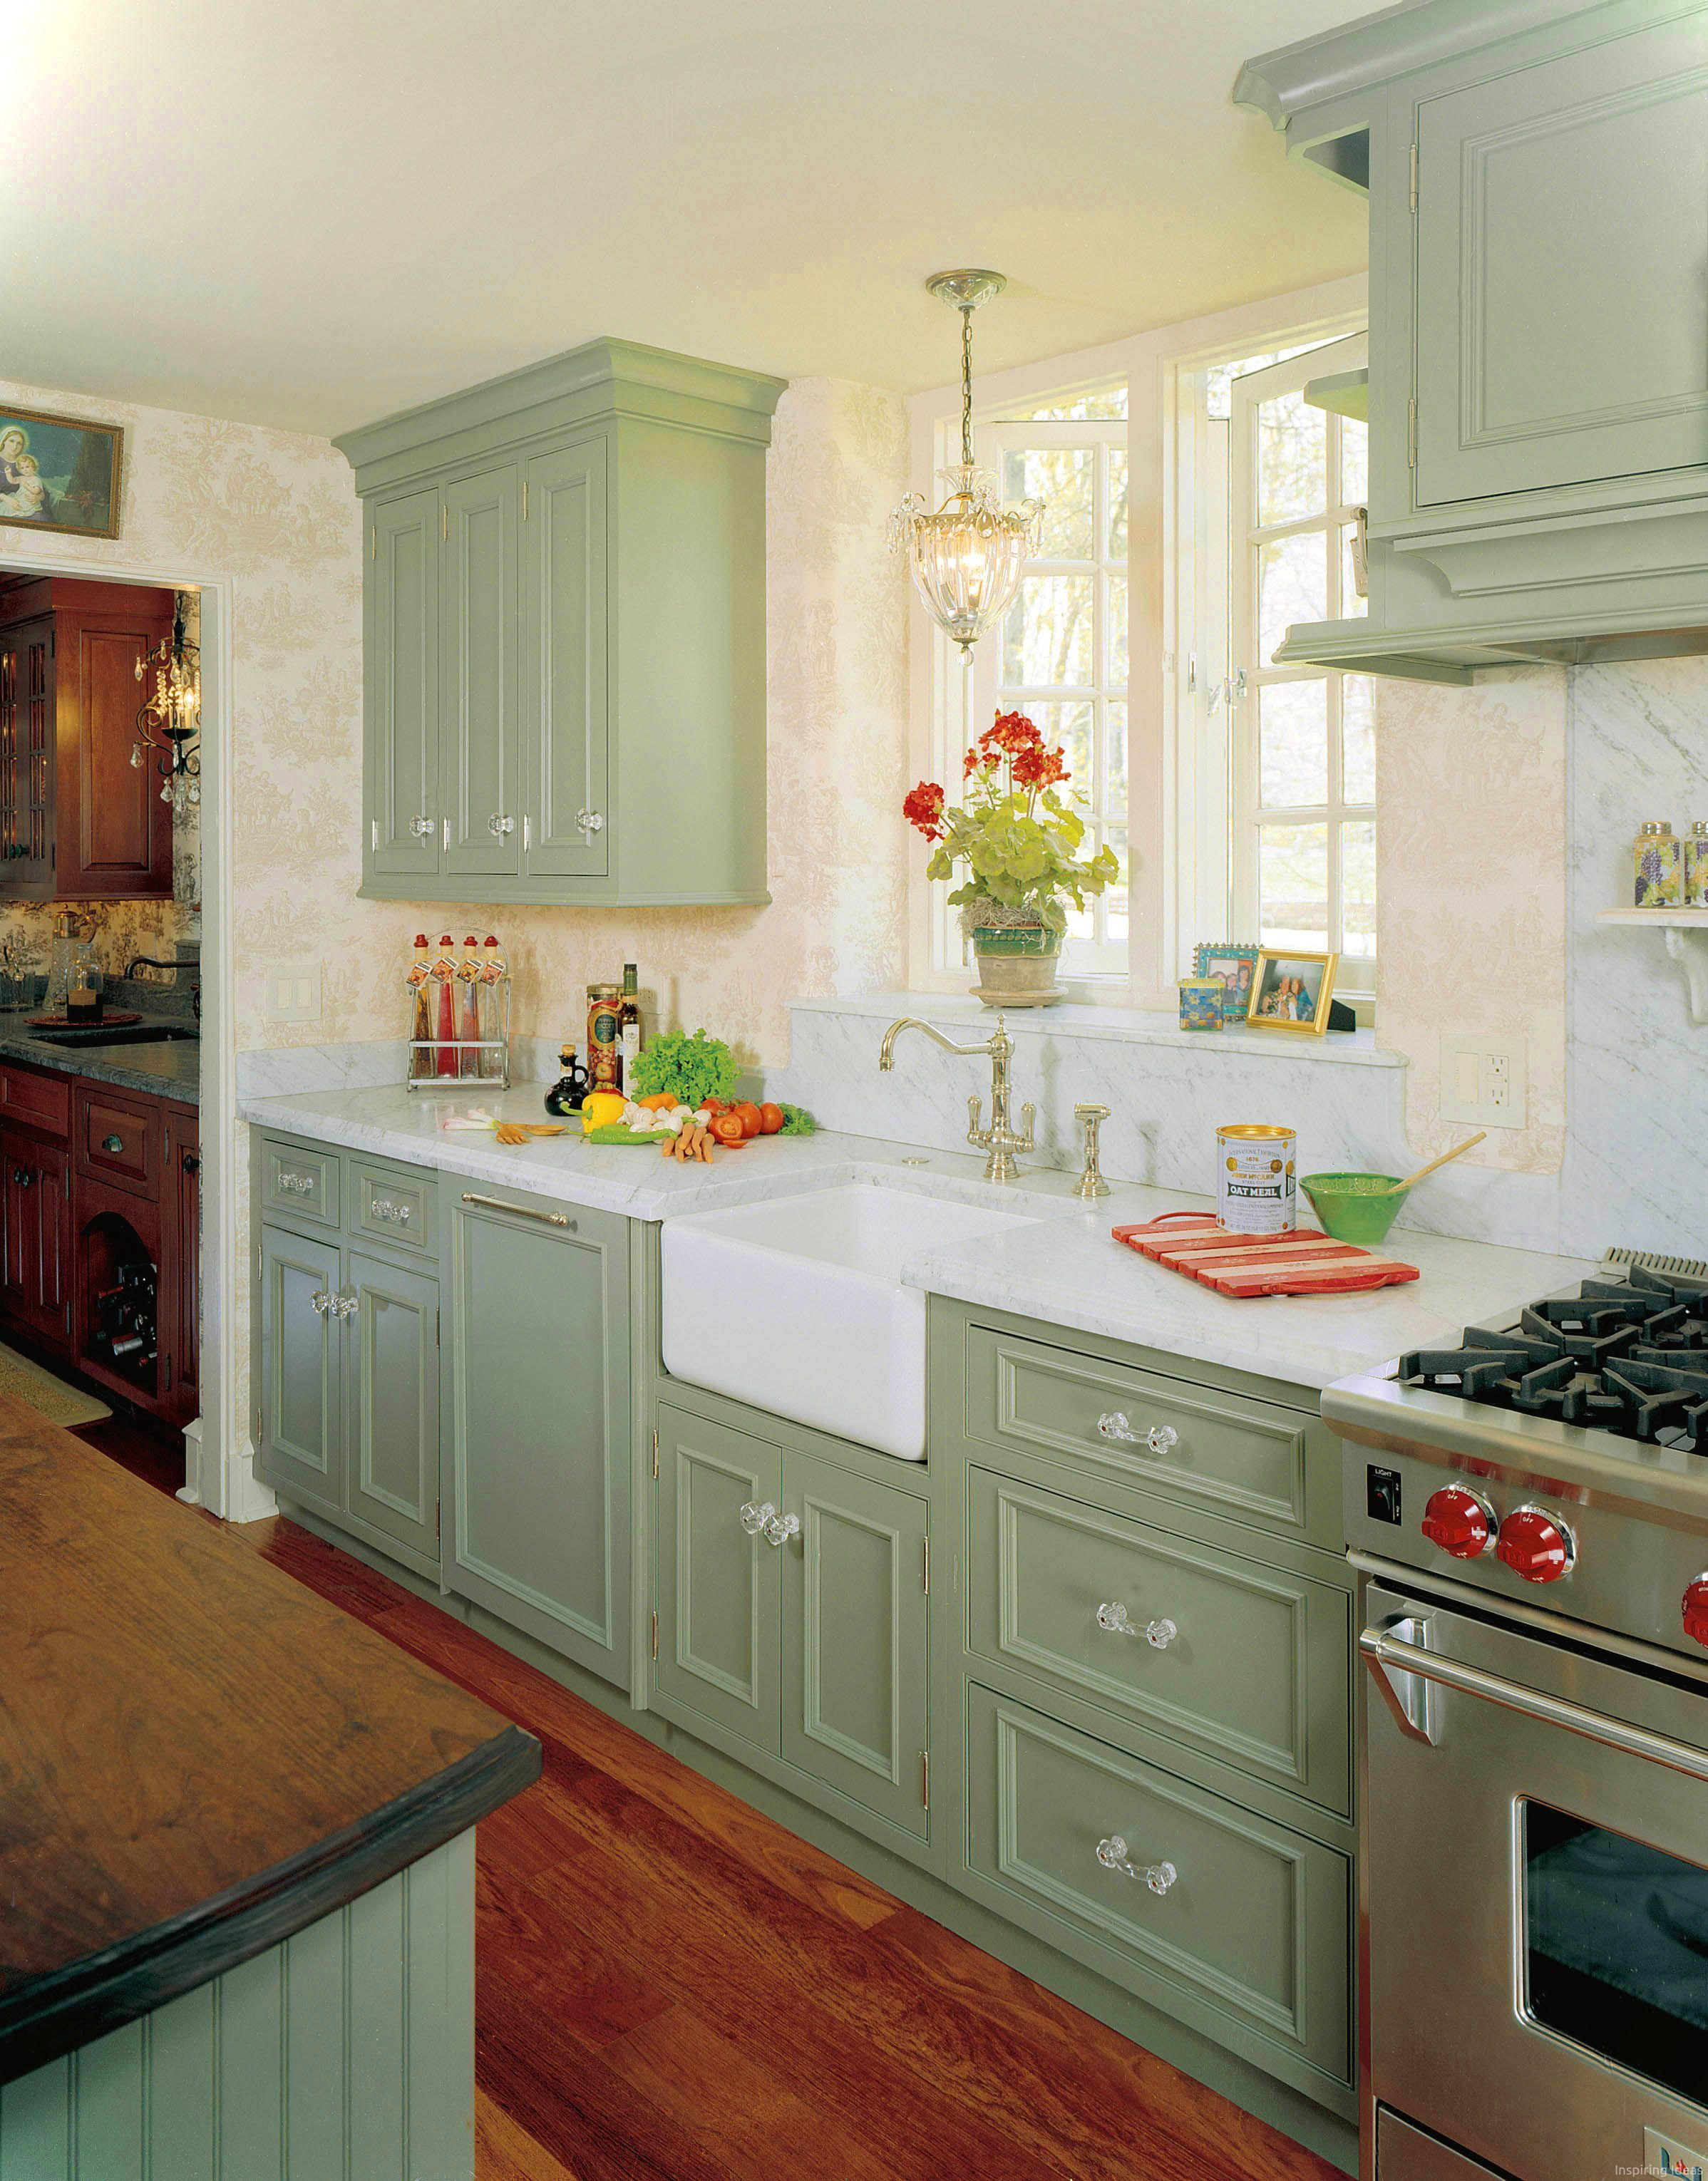 Cool 44 Inspiring Cottage Kitchen Cabinets Ideas Country Style Https Roomaniac Com 4 Cottage Kitchen Cabinets English Country Kitchens Cottage Kitchen Design